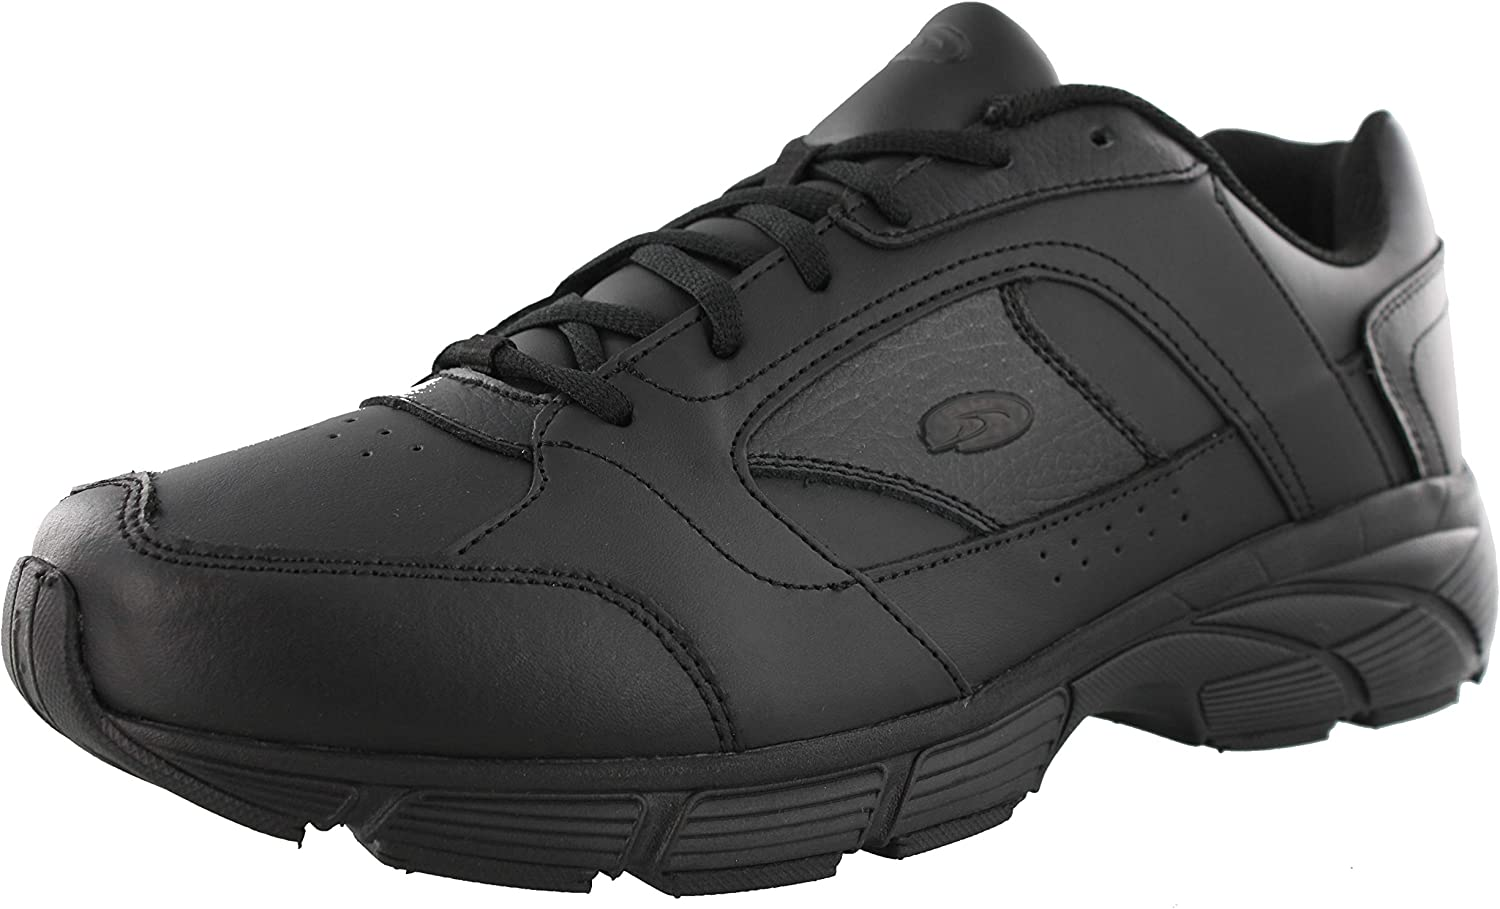 Dr. Scholl's Men's Warum Athletic Wide Width Walking shoes